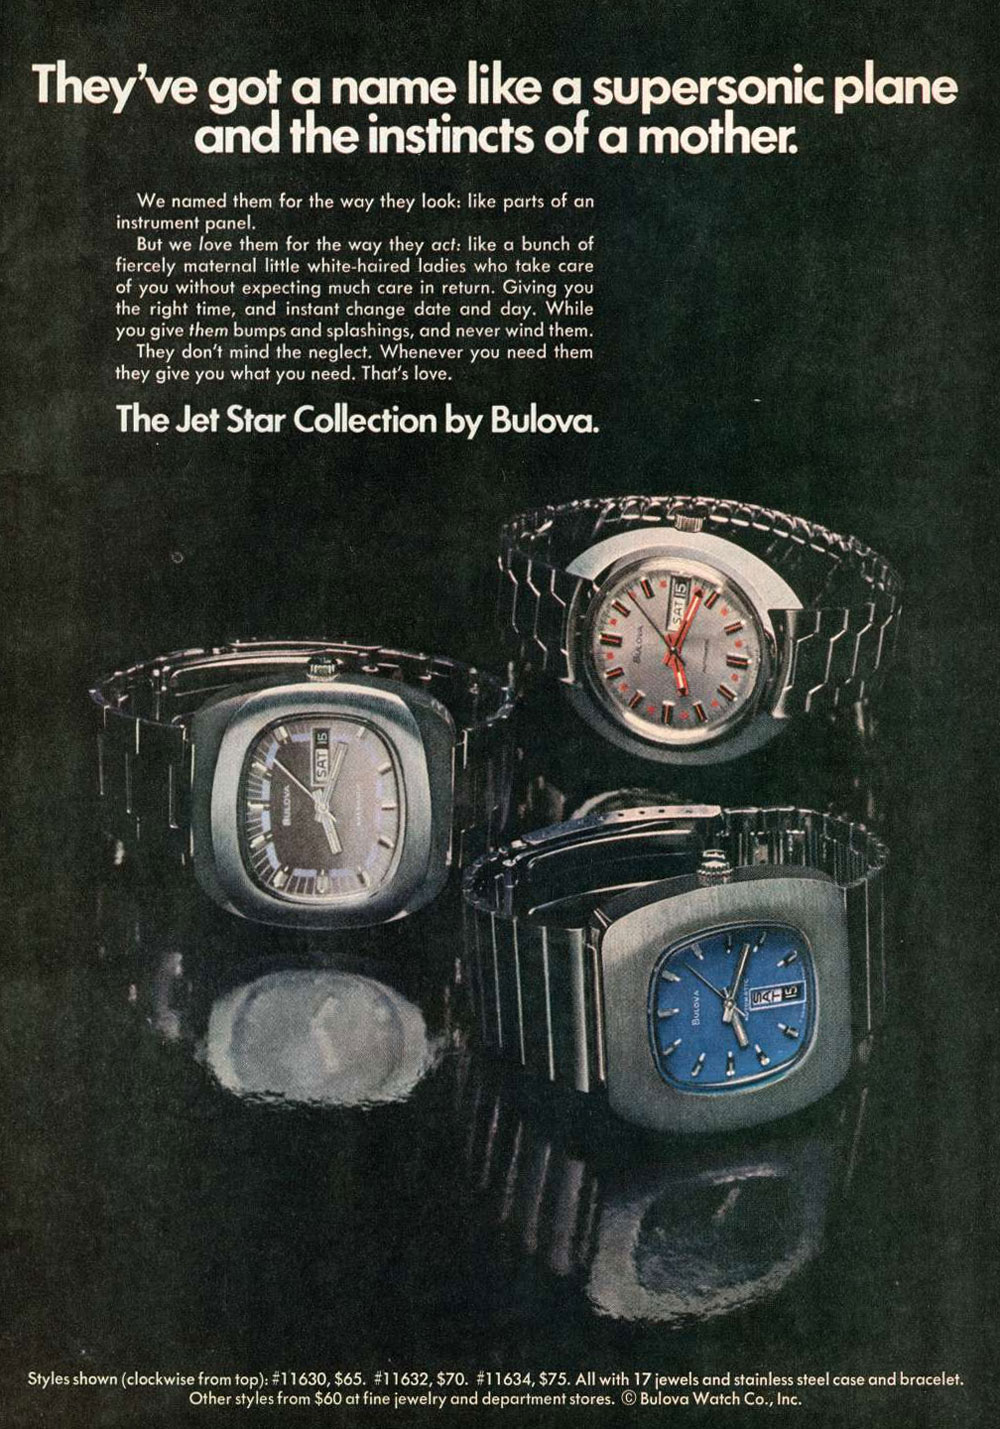 1973 Vintage Bulova Jet Star Collection Ad - Courtesy of Geoffrey Baker